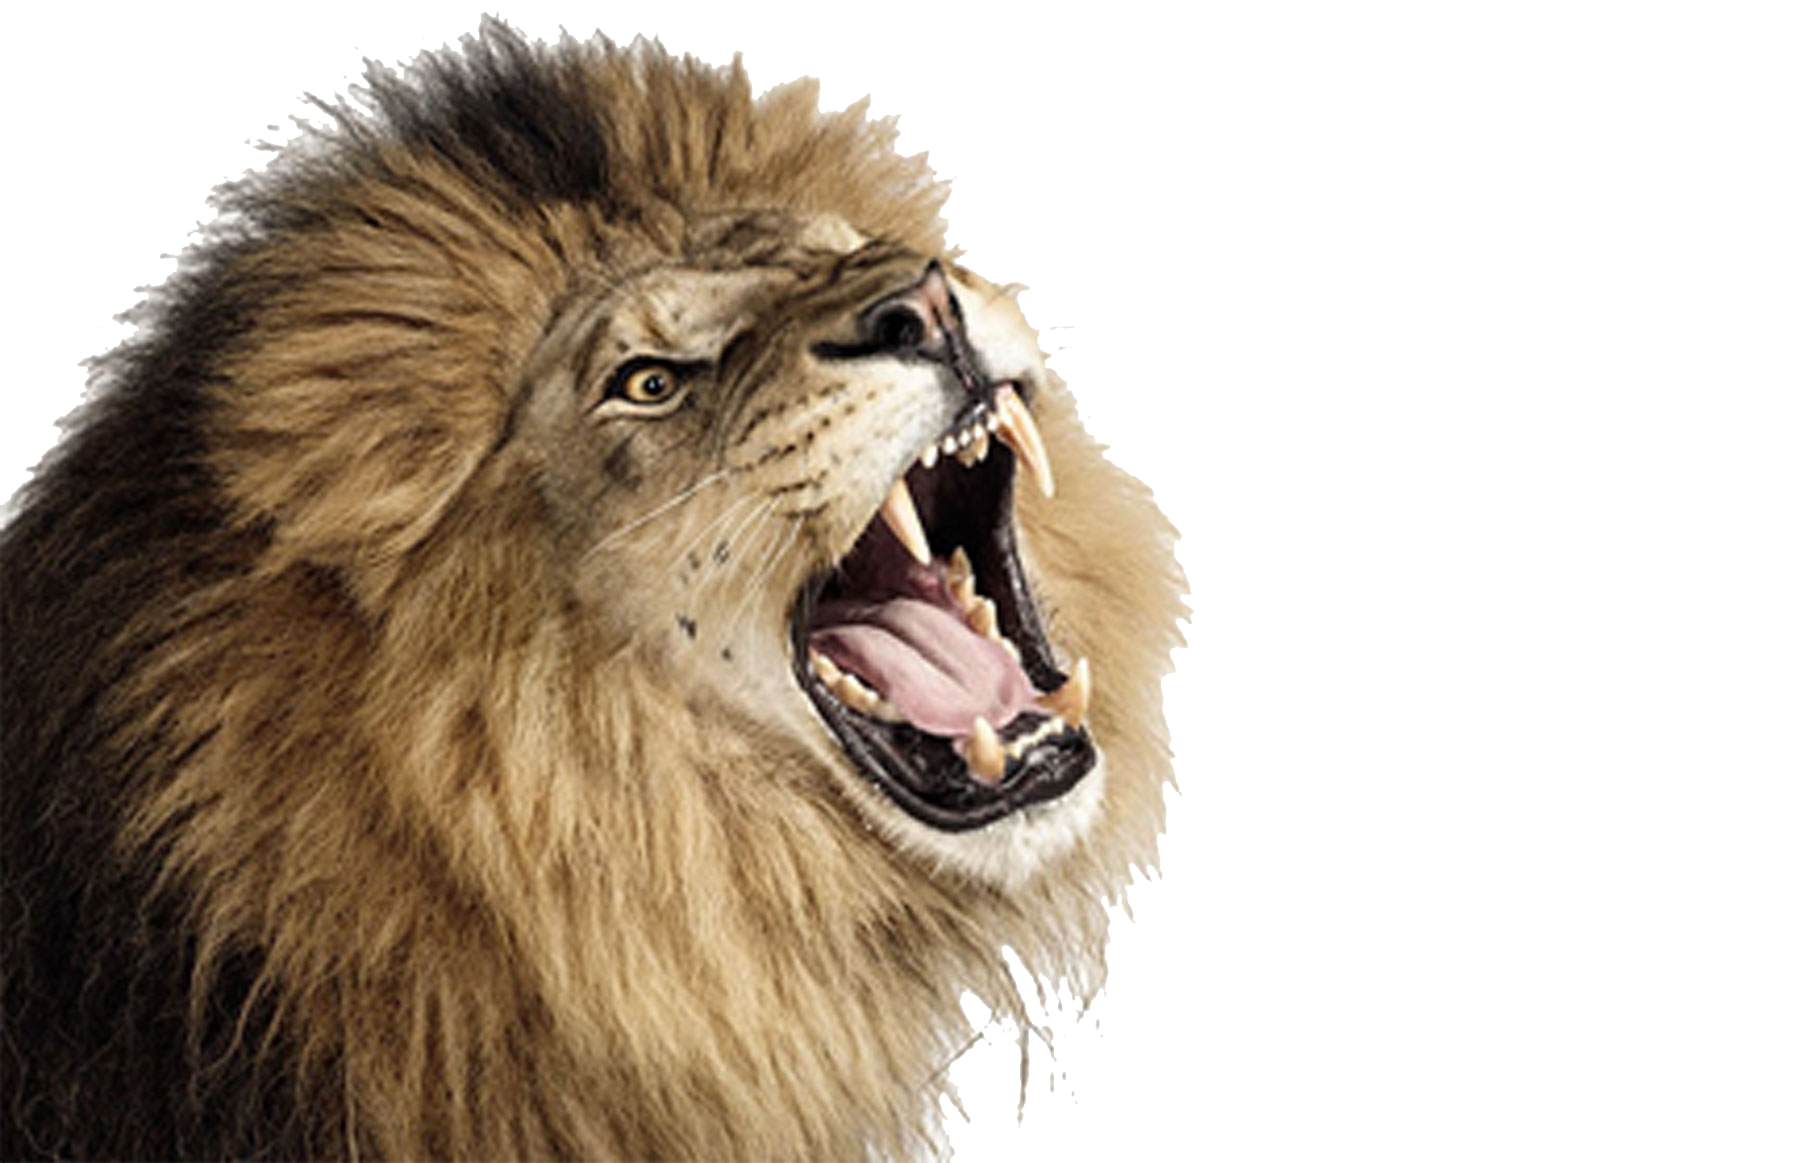 Roaring Lion Photos PNG Image